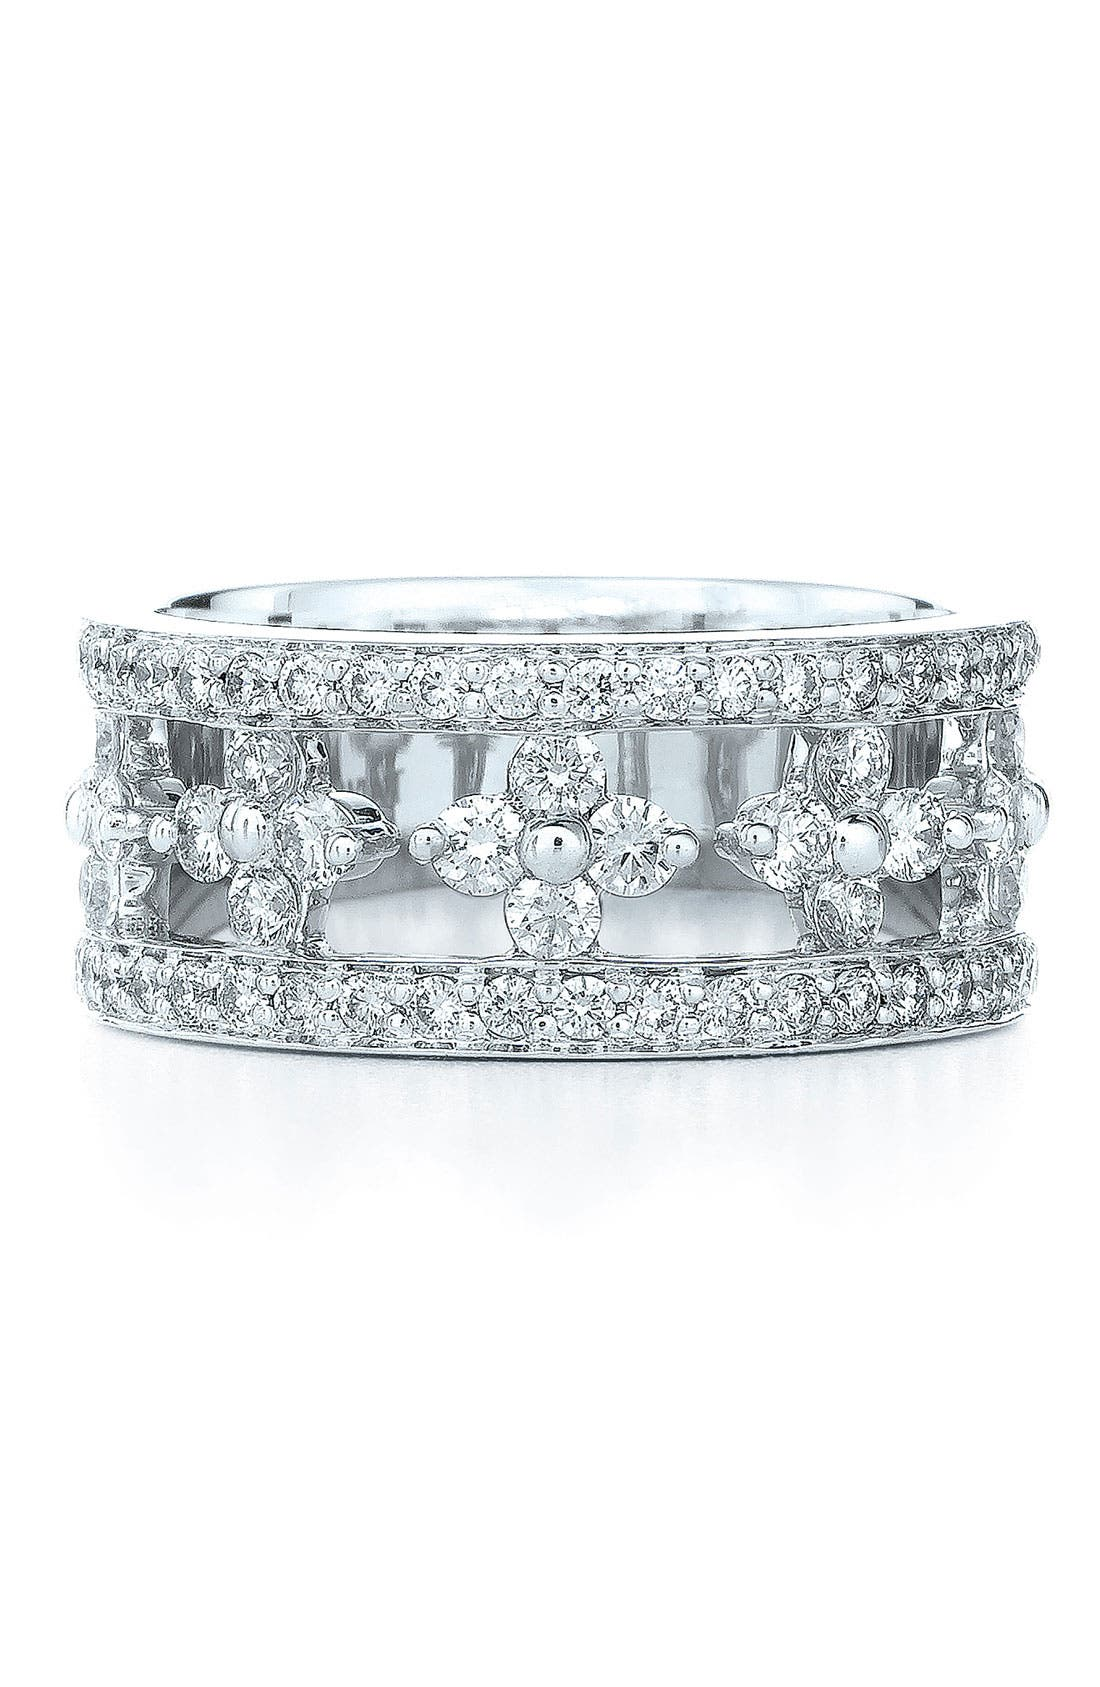 'Jasmine' Floral White Gold & Diamond Ring,                         Main,                         color, WHITE GOLD